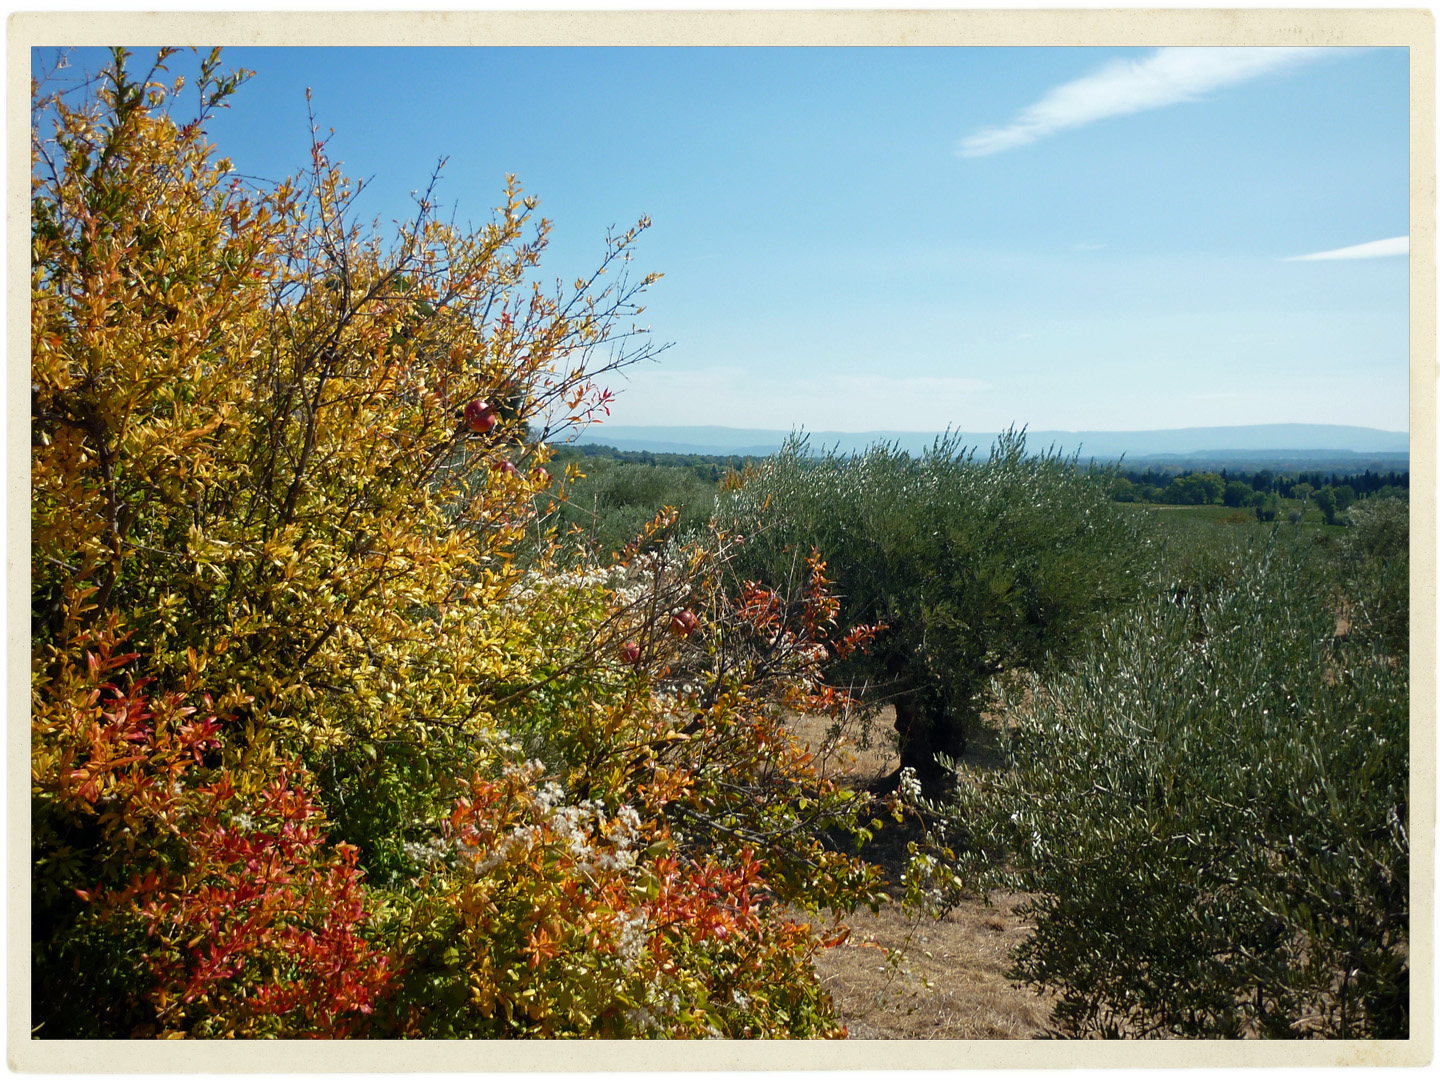 Olives and pomegranates. What's not to love about this place?